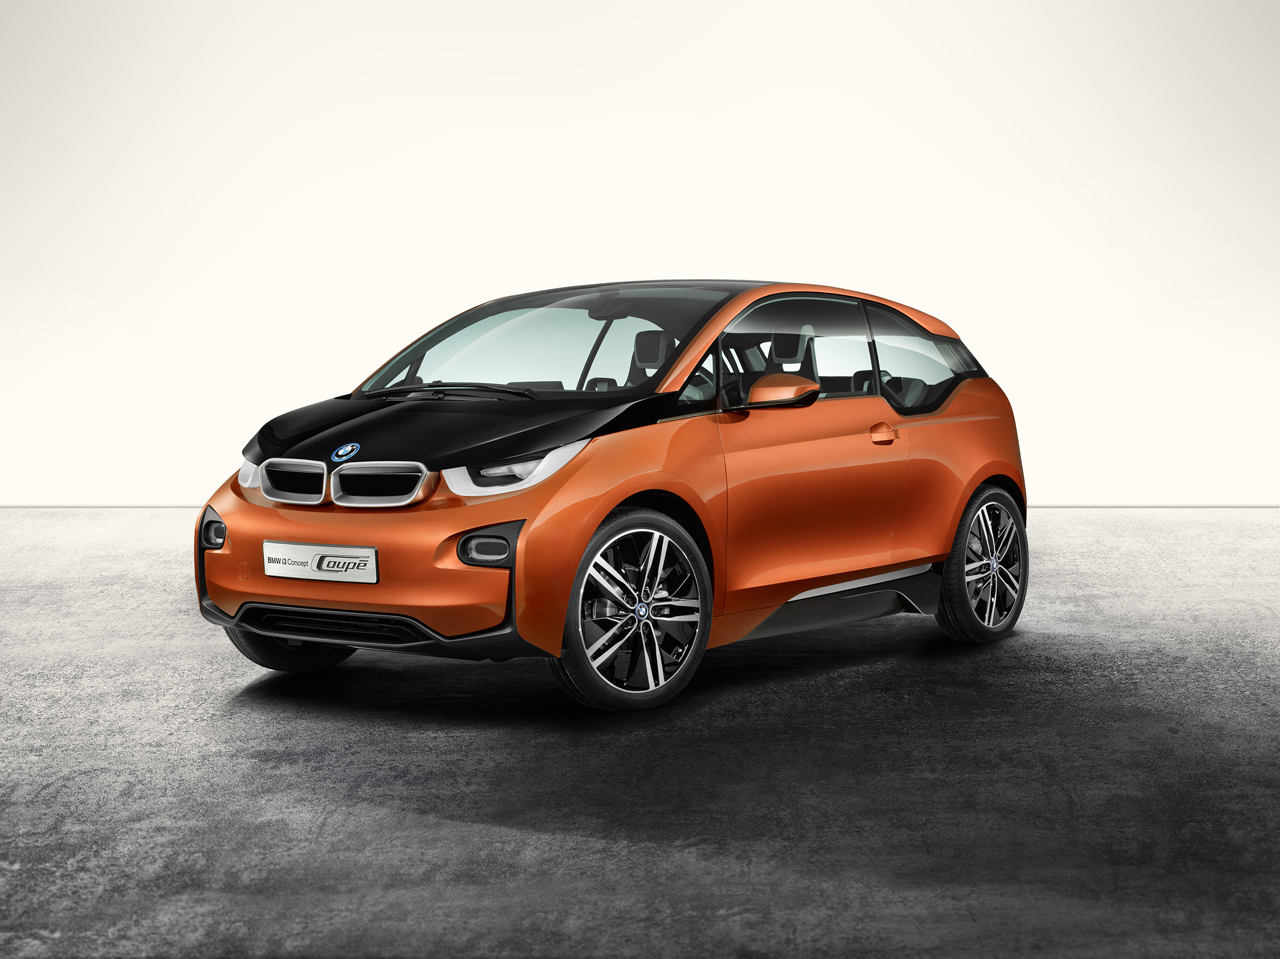 la bmw i3 sera vendue au prix de autoday. Black Bedroom Furniture Sets. Home Design Ideas